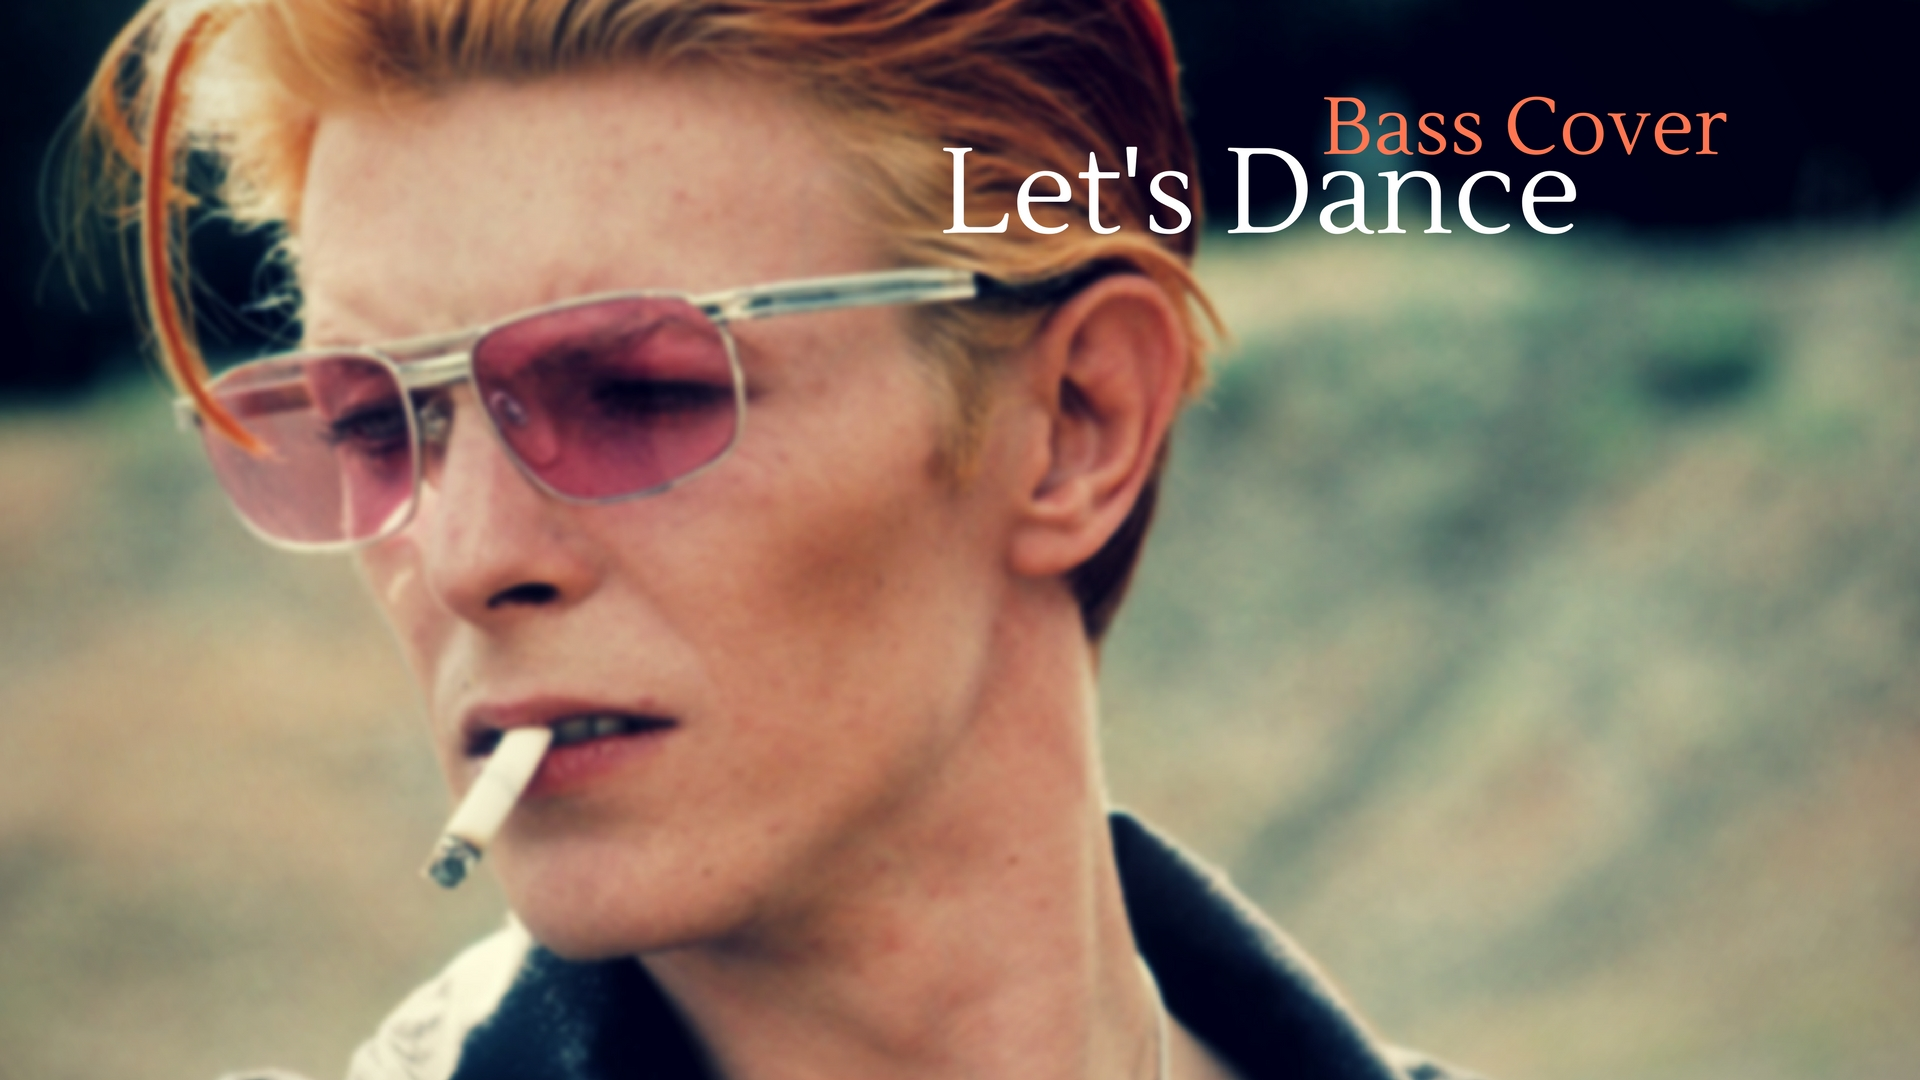 Let's dance bass cover